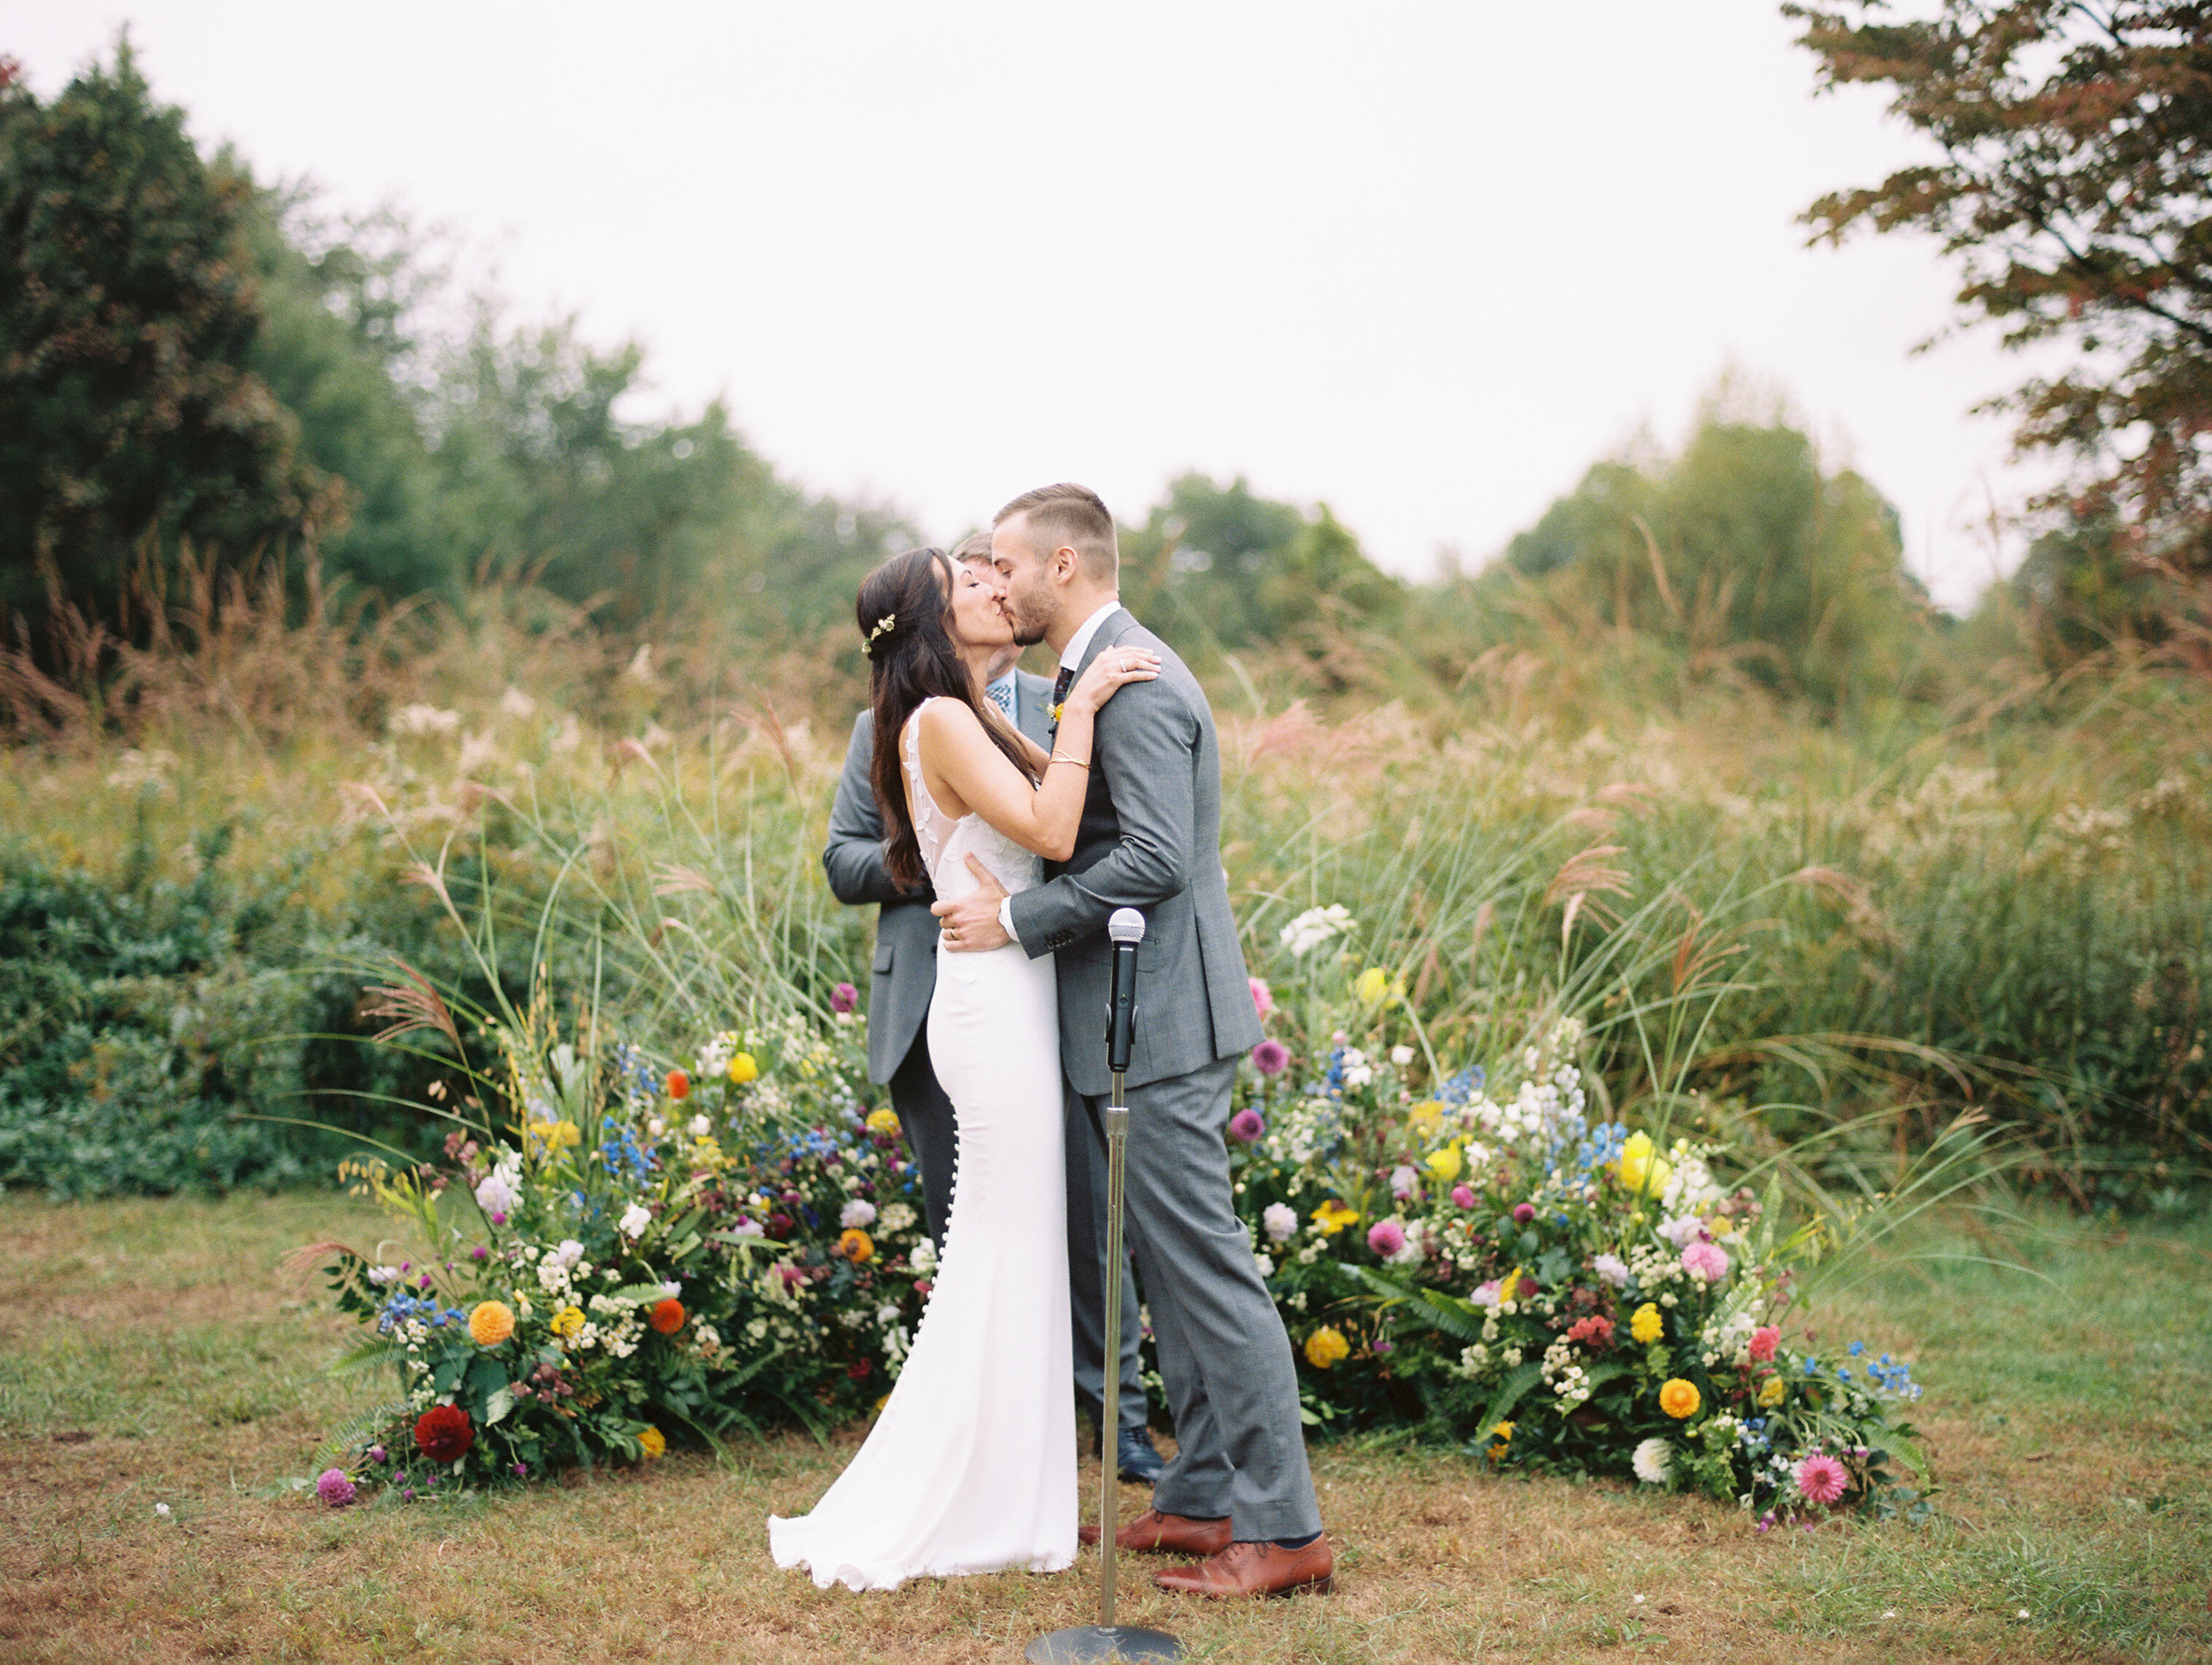 greenwichweddingleilabrewsterphotography278.jpg